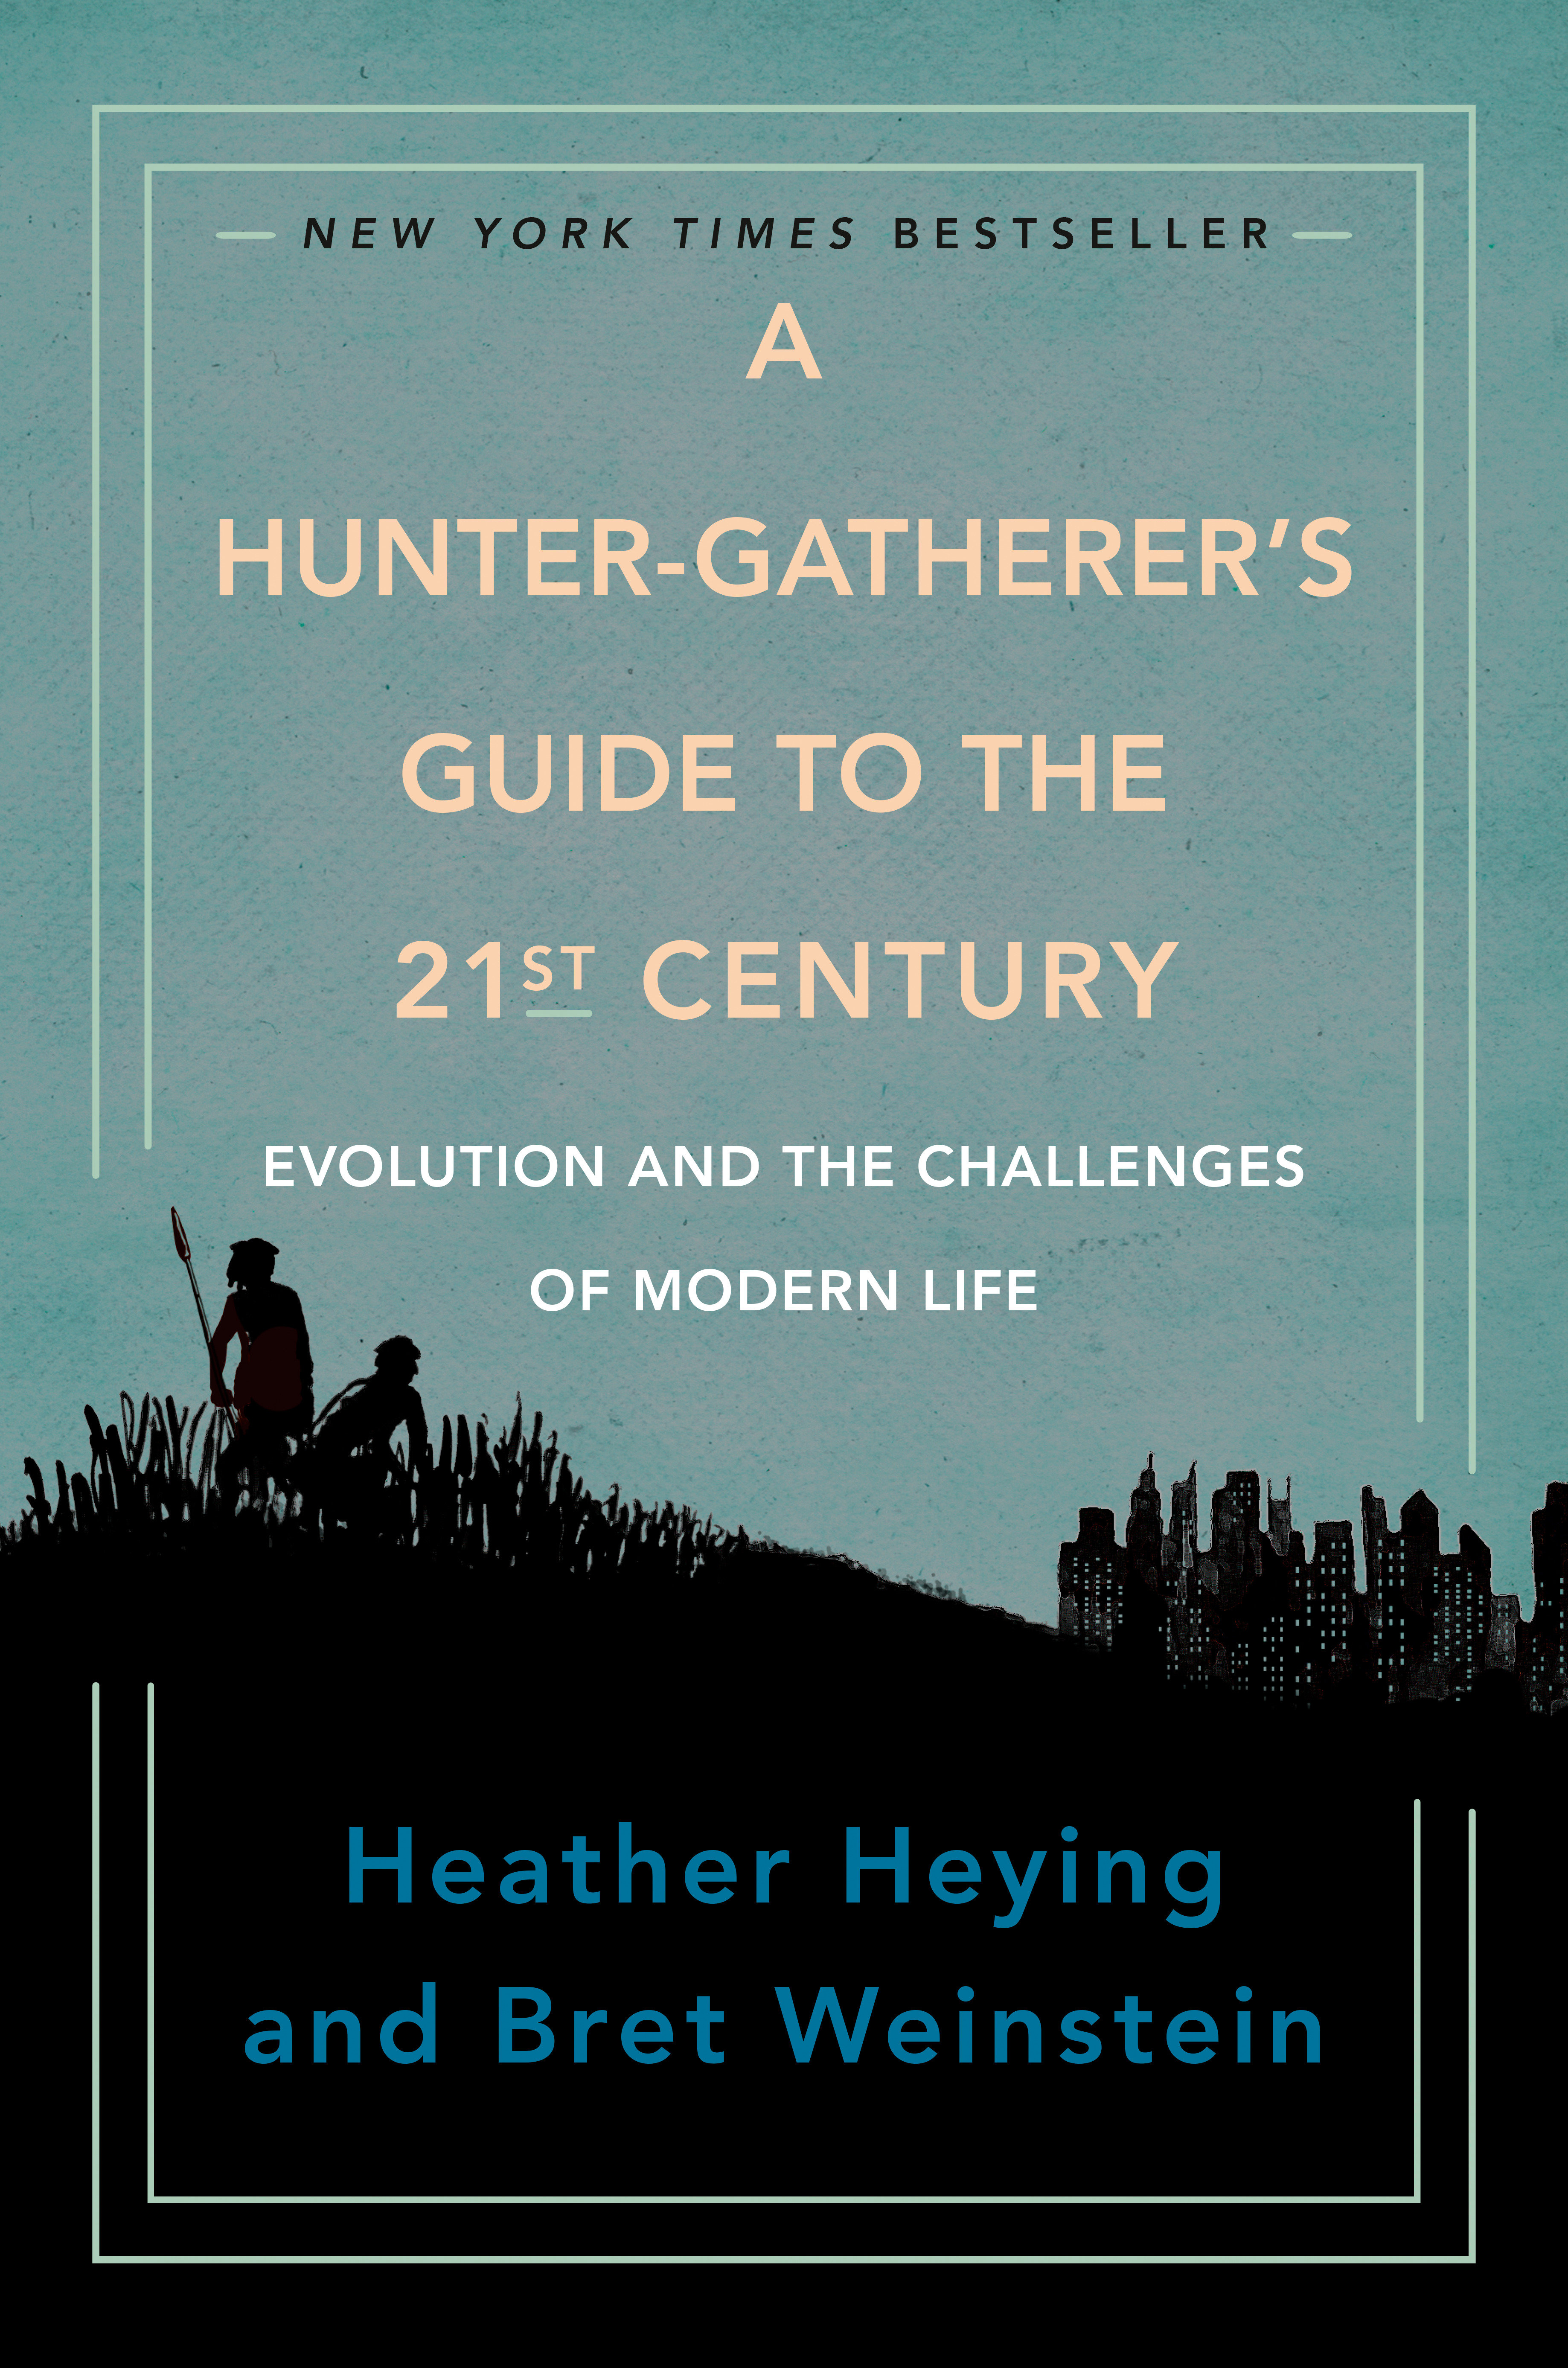 Cover Image of A Hunter-Gatherer's Guide to the 21st Century